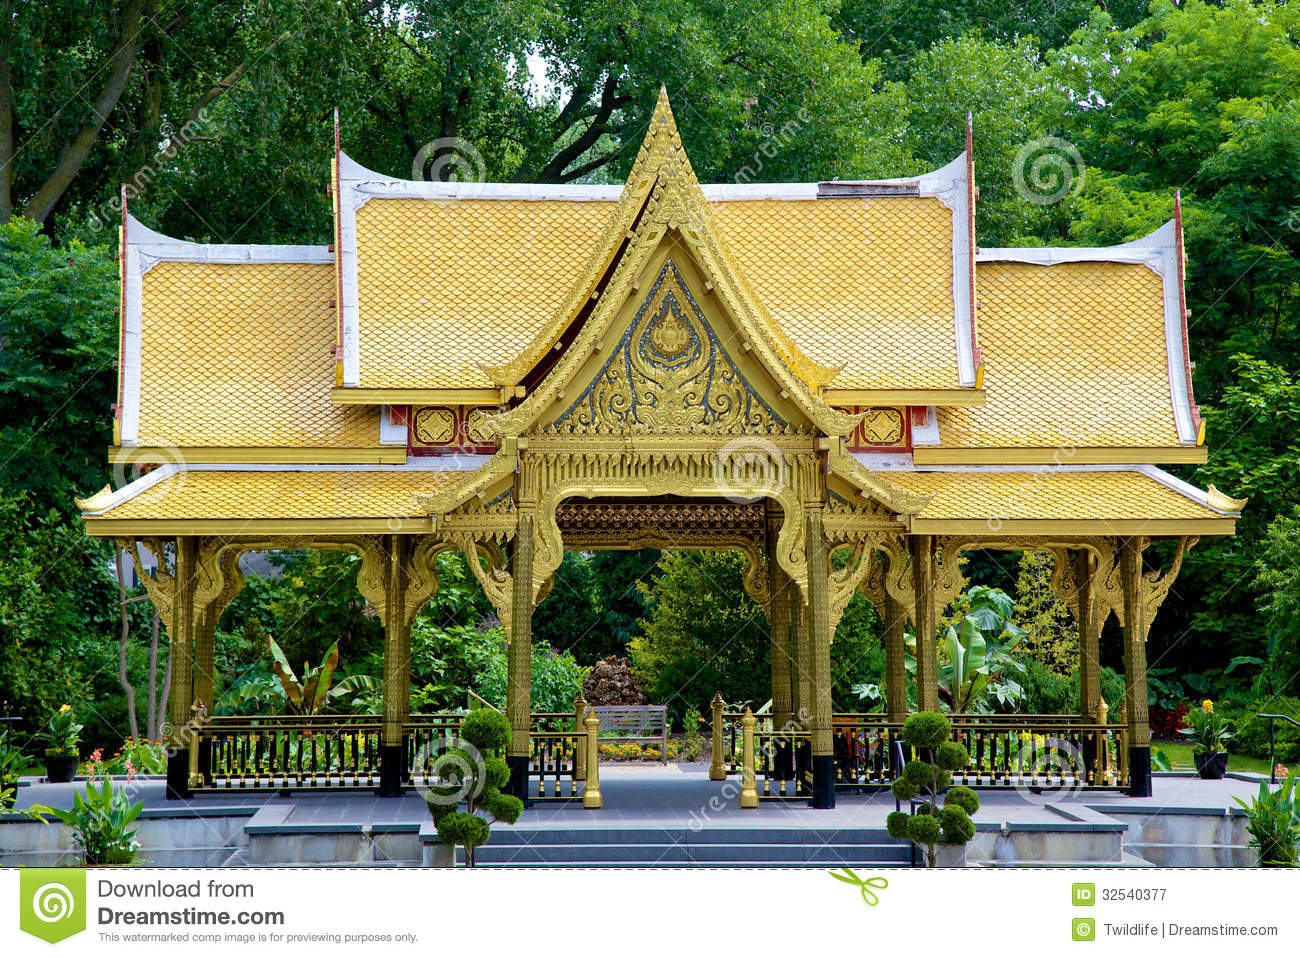 Fall Comes To Garden Of Thai Pavilion >> Thai Pavilion Sala Stock Image Image Of Temple Palace 32540377